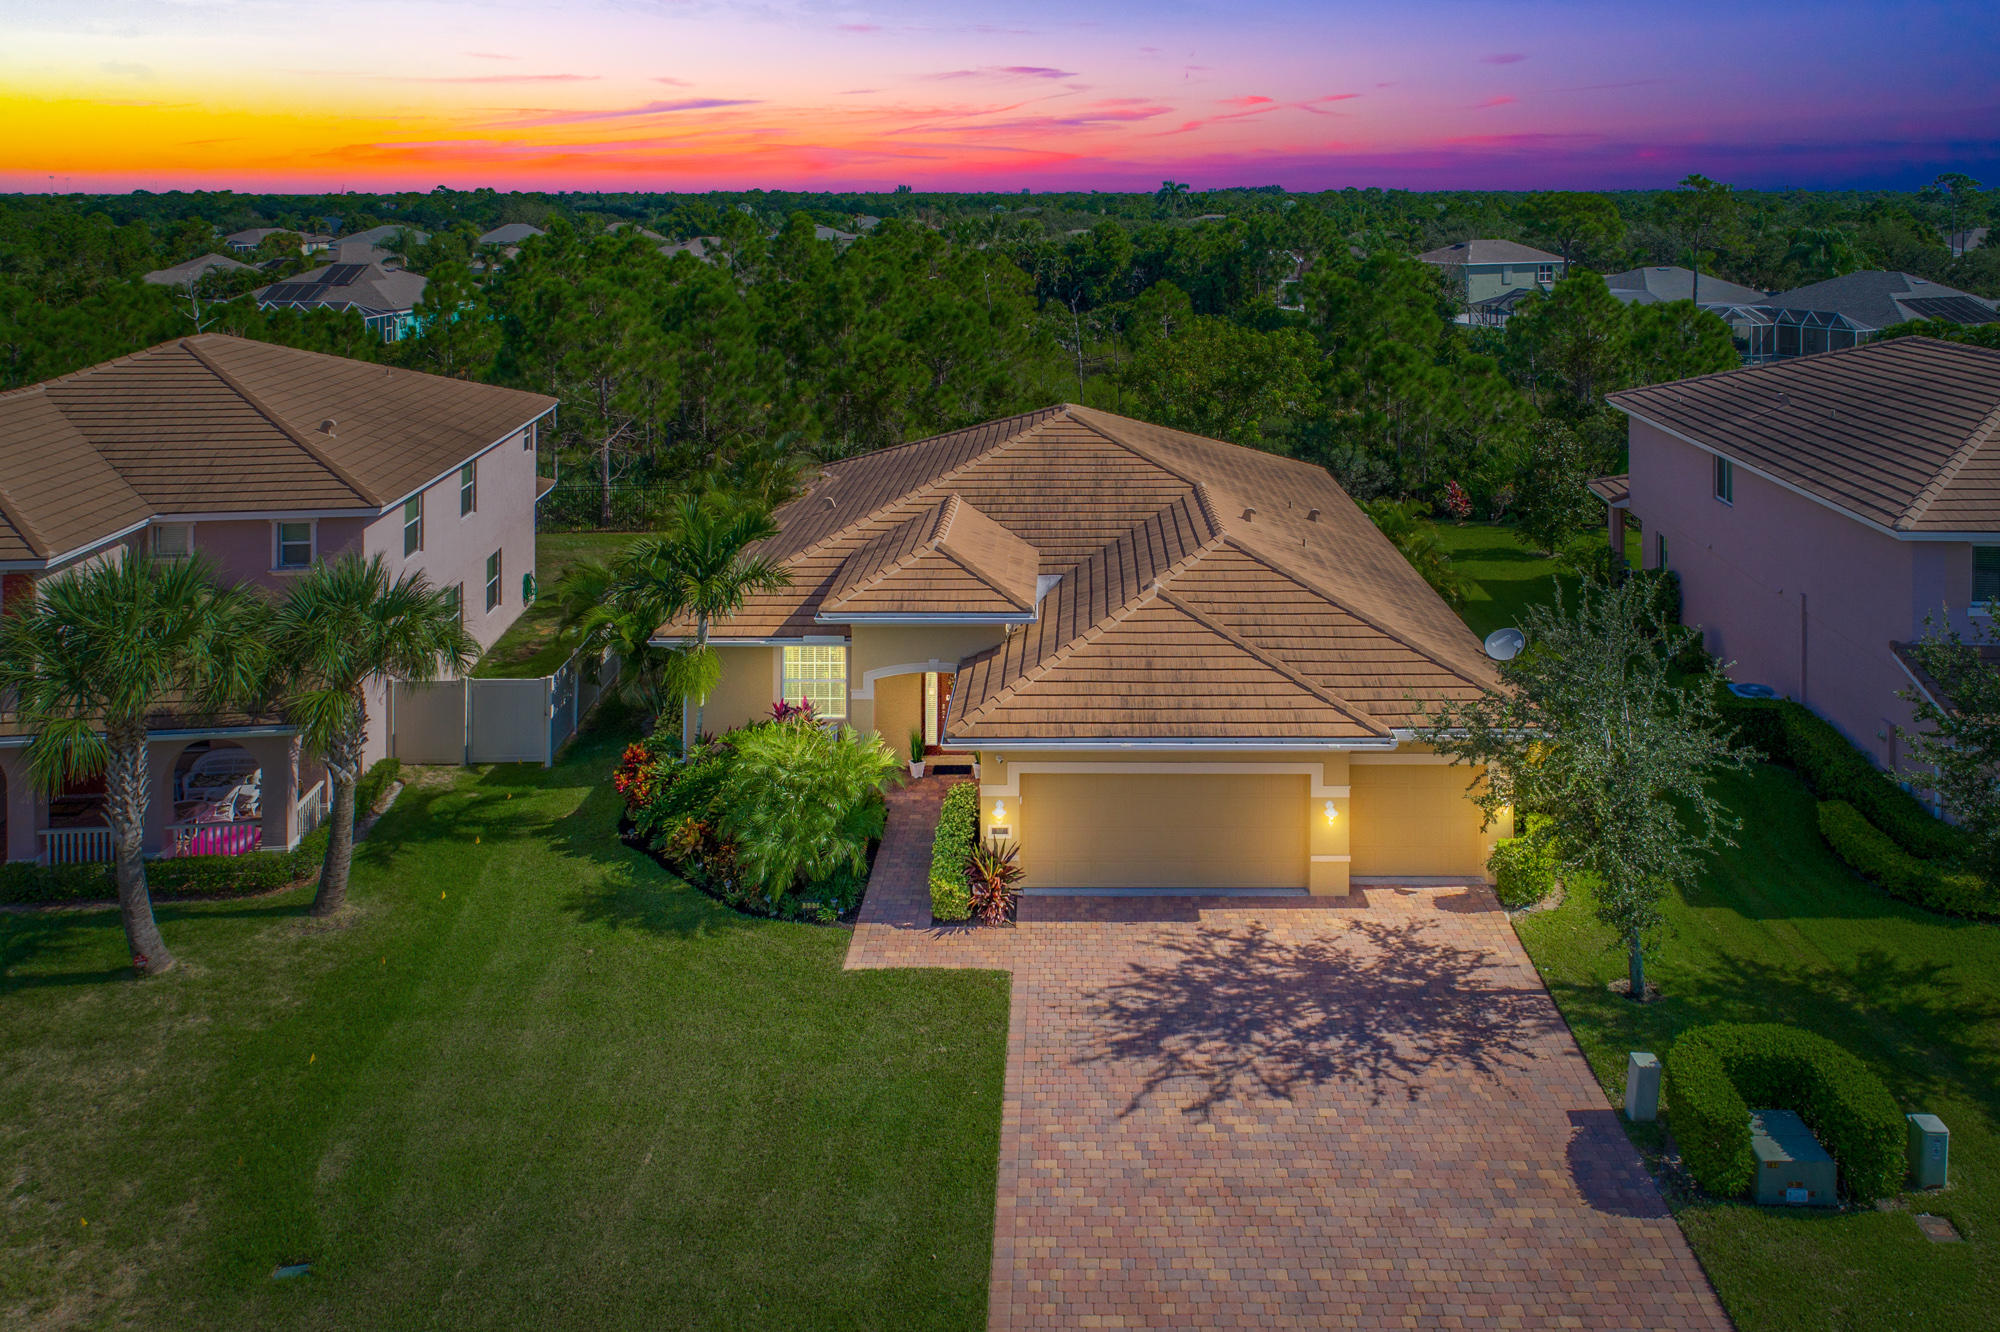 Home for sale in PINEAPPLE PLANTATION PL 7 PH A - The Pines Jensen Beach Florida